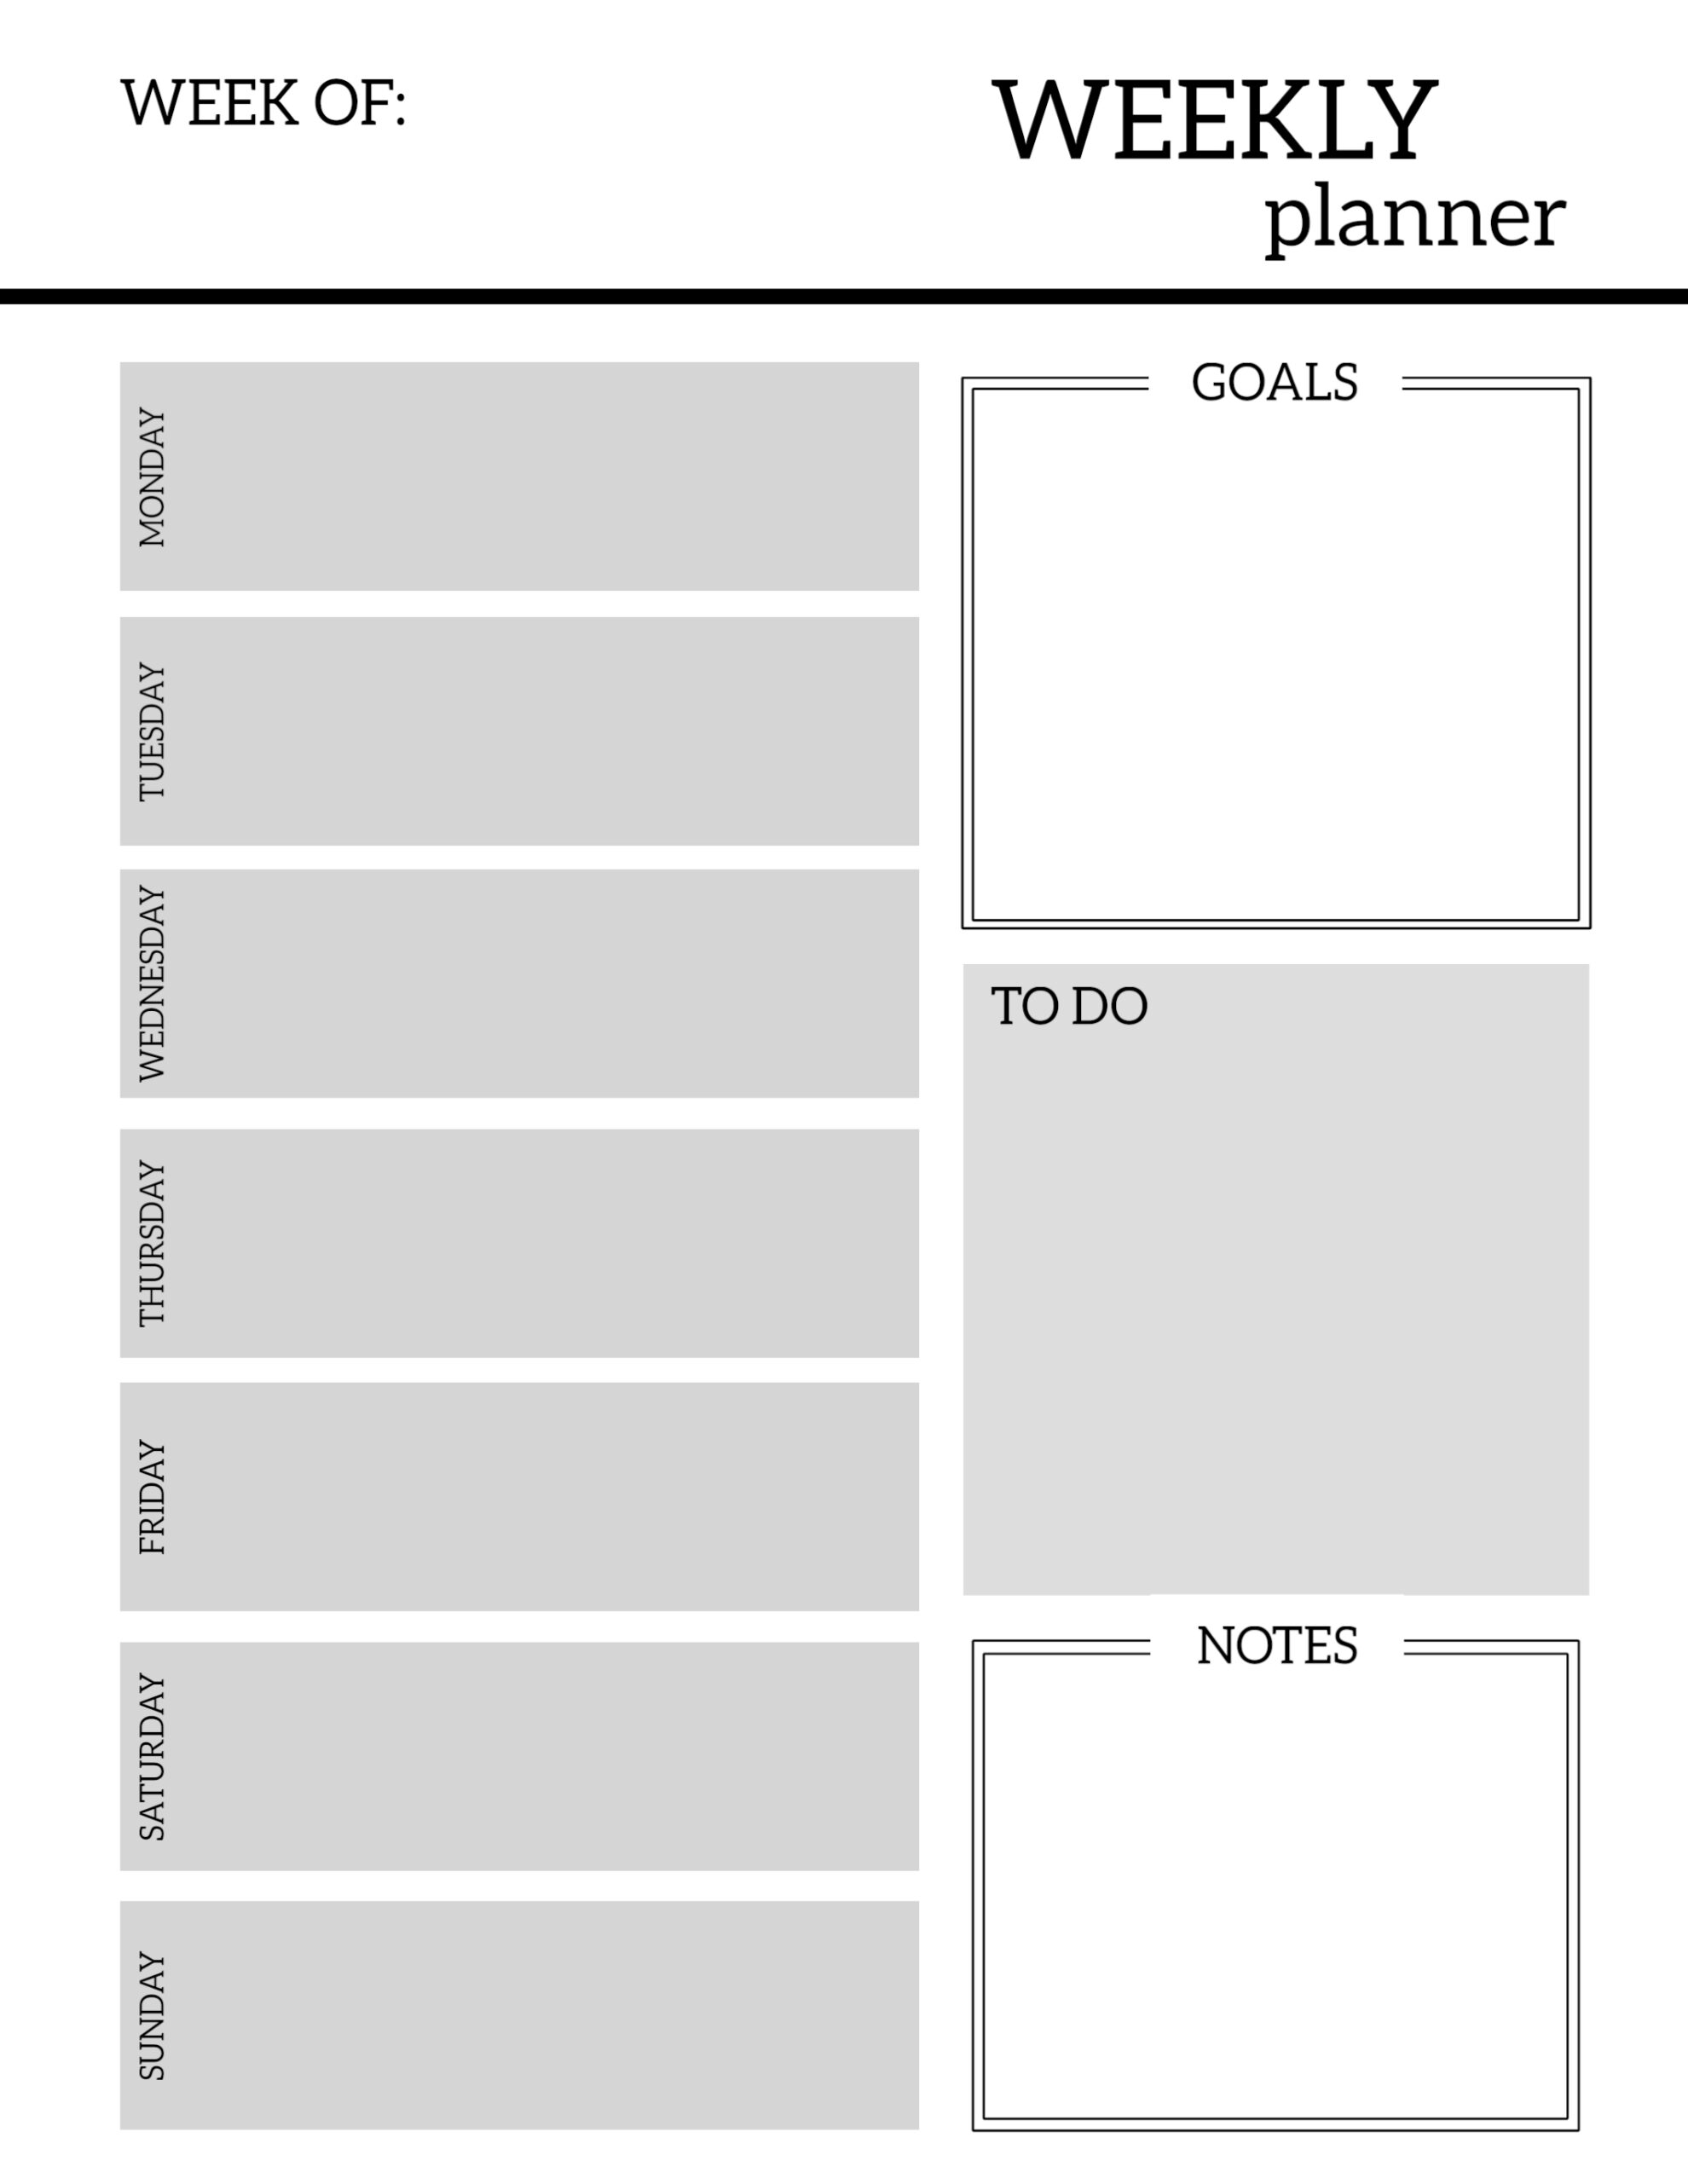 image regarding Weekly Planner Page called Cost-free Printable Weekly Planner Internet pages - Paper Path Structure